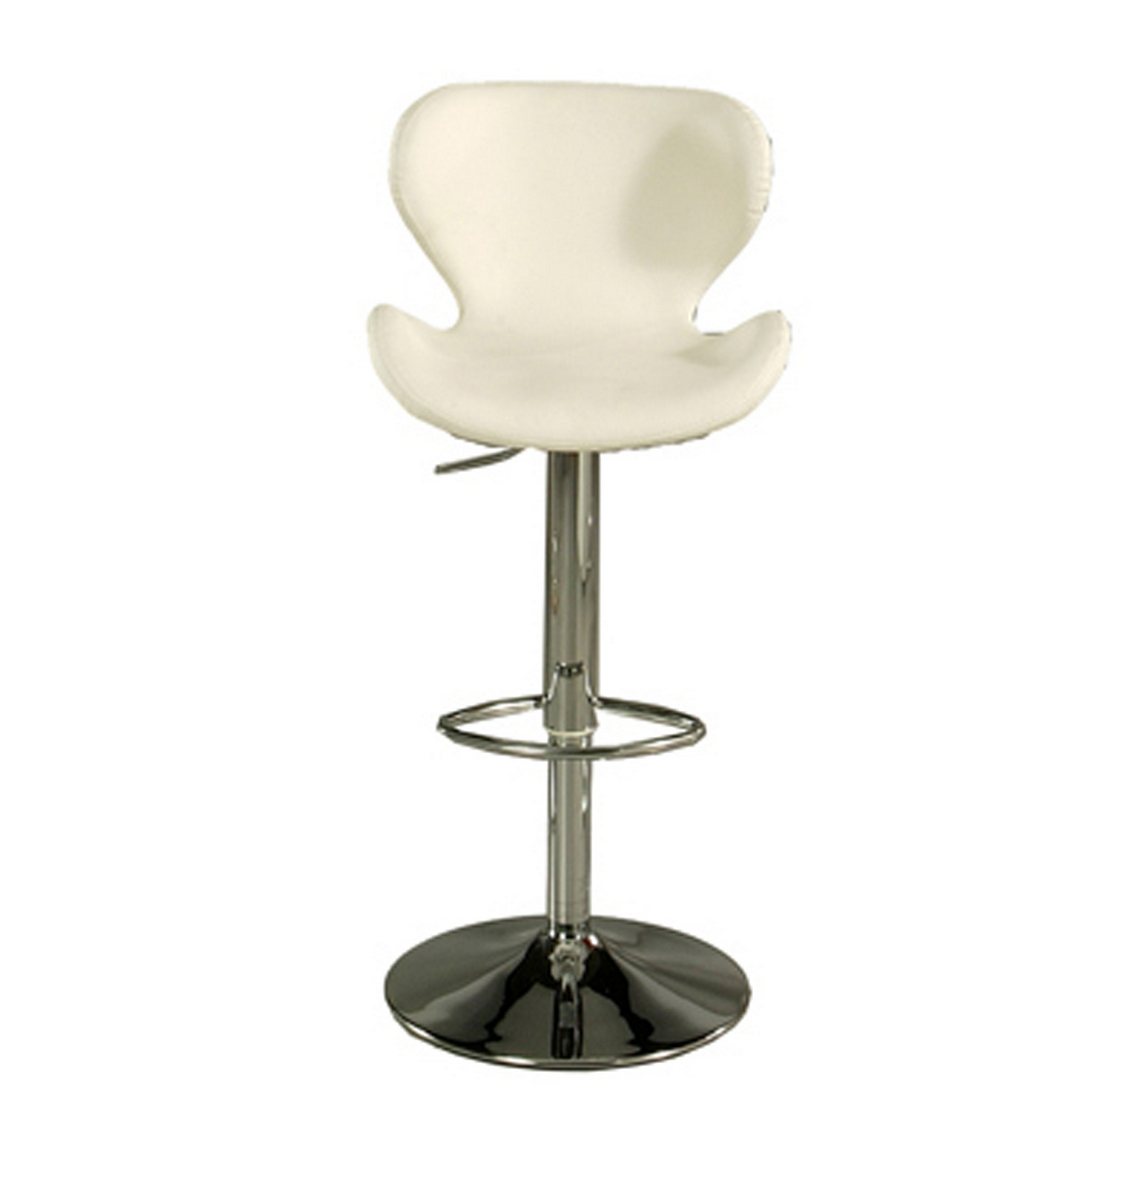 charming cymax bar stools with white seat and back plus single metal leg for home furniture ideas